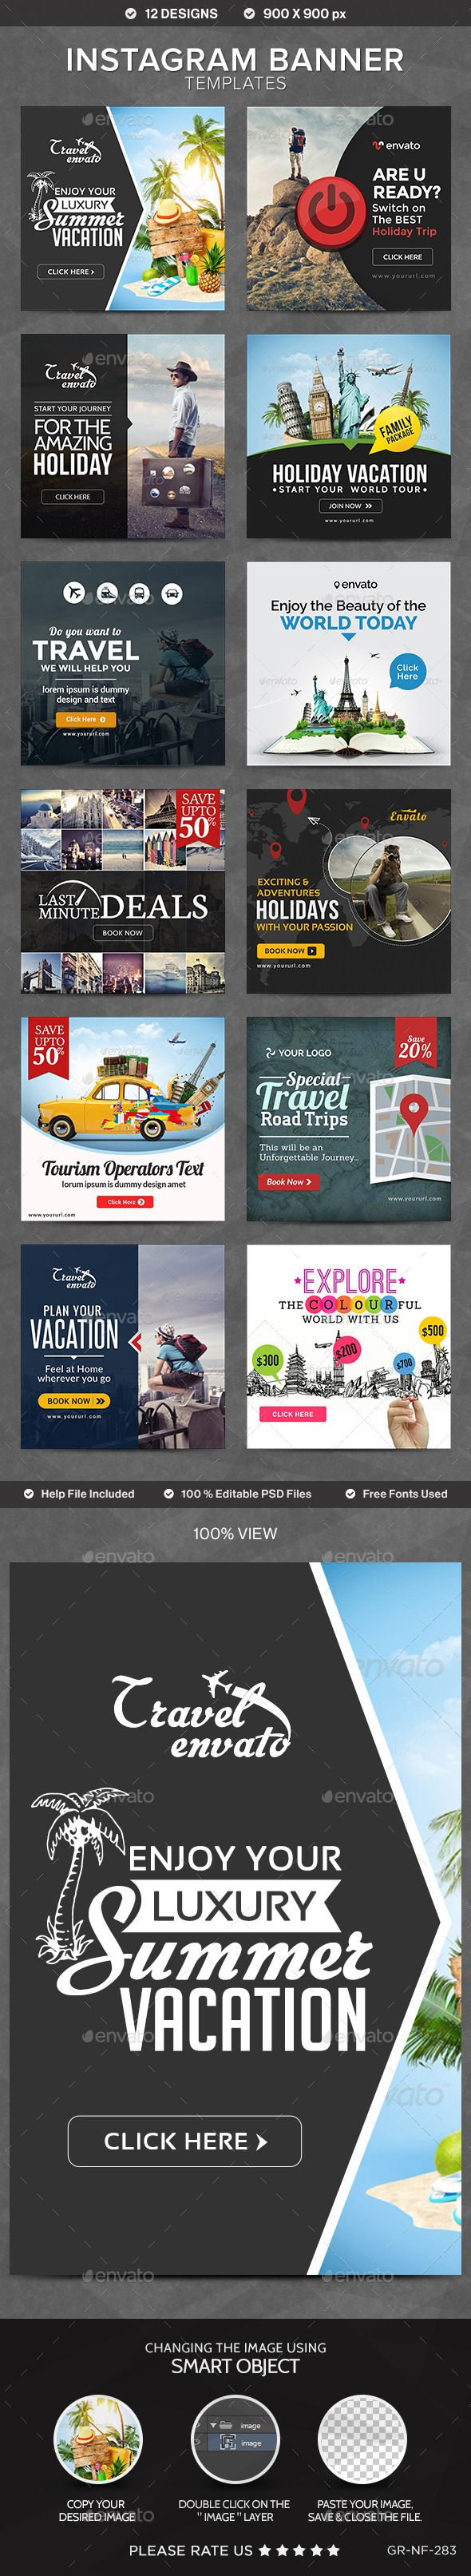 848 best Marketing images on Pinterest